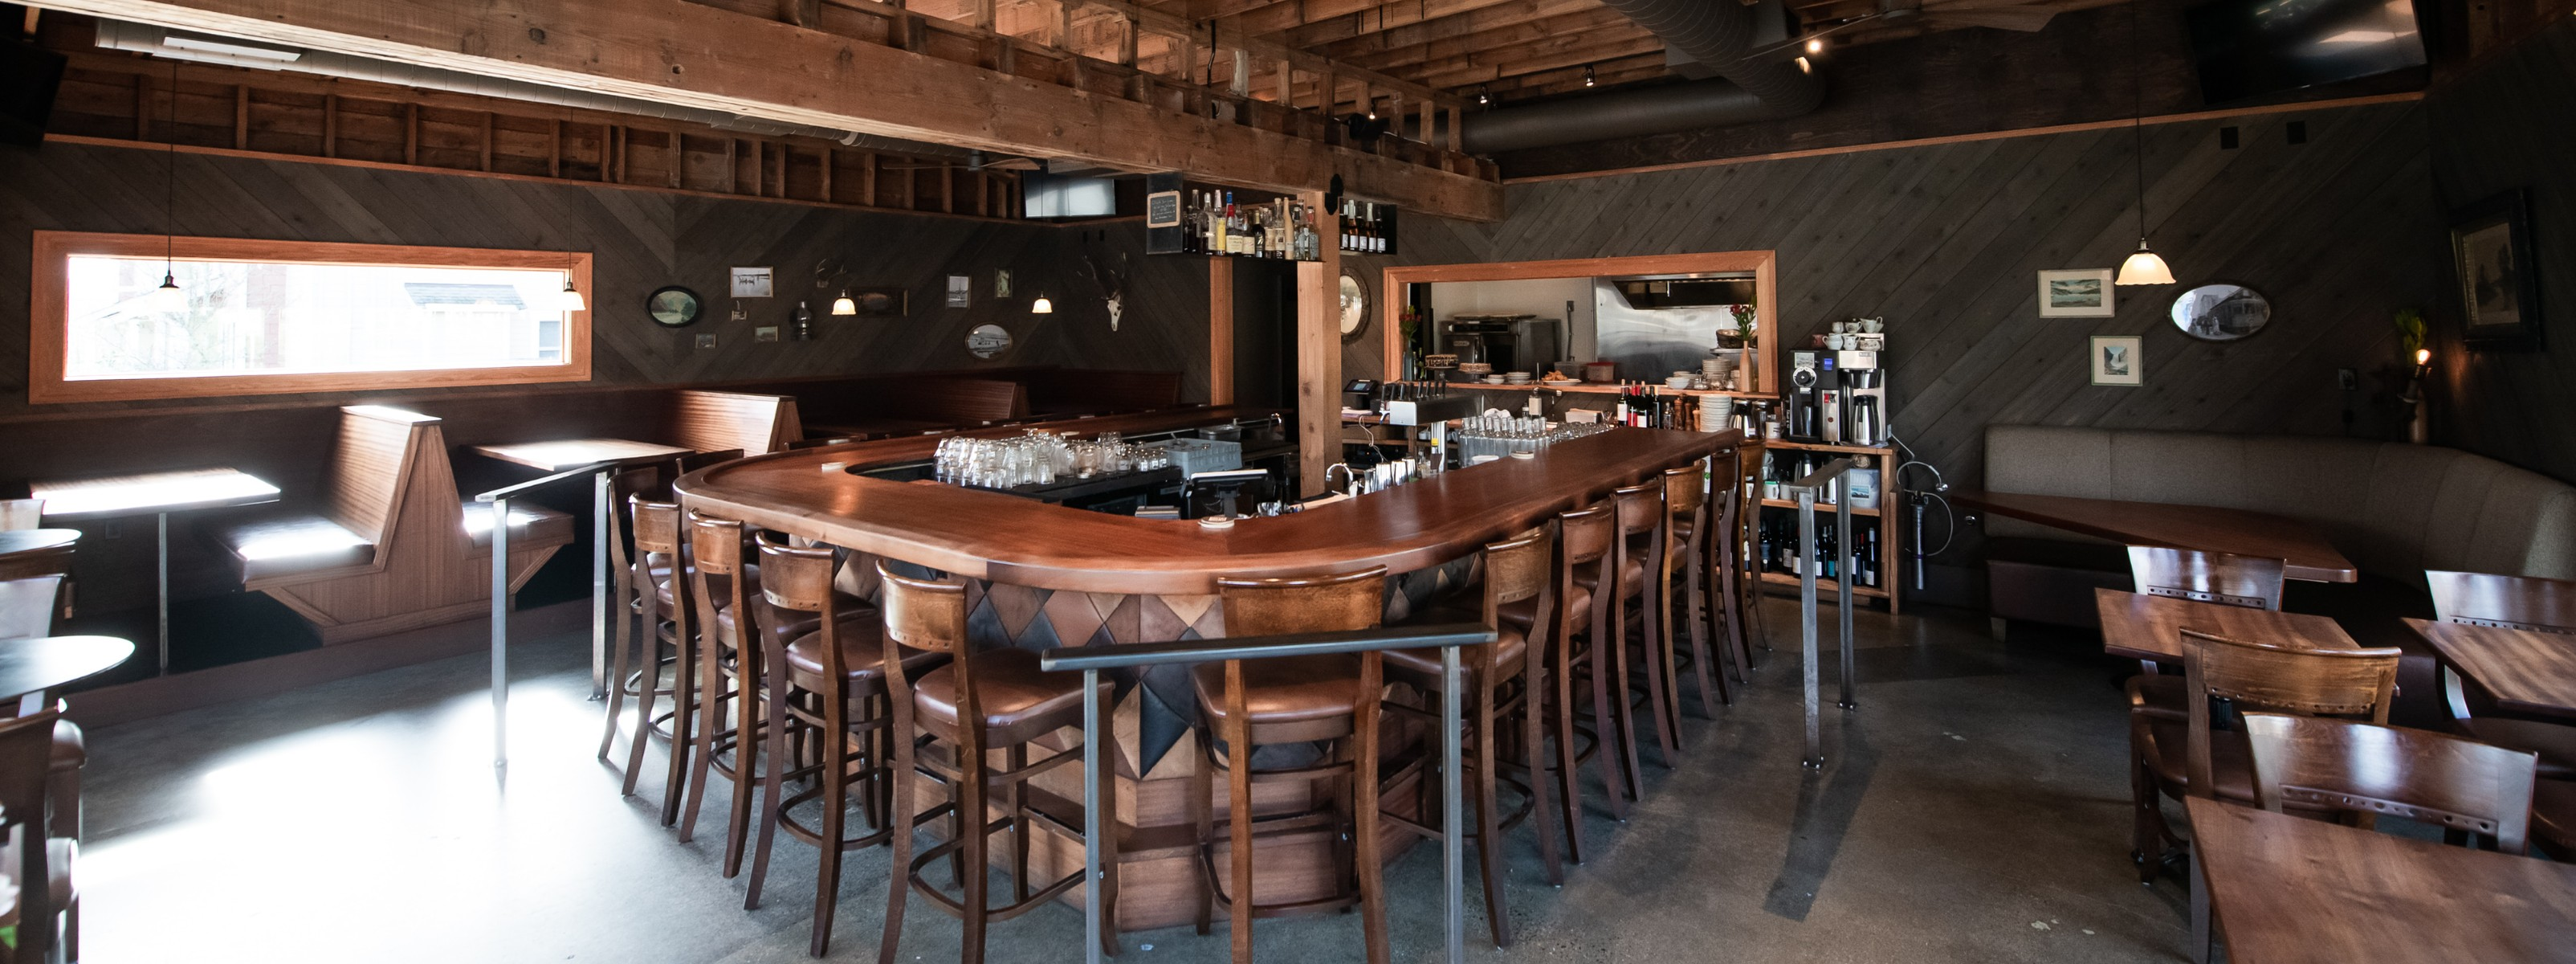 Where To Go Out When You Don't Go Out Anymore - Seattle - The Infatuation